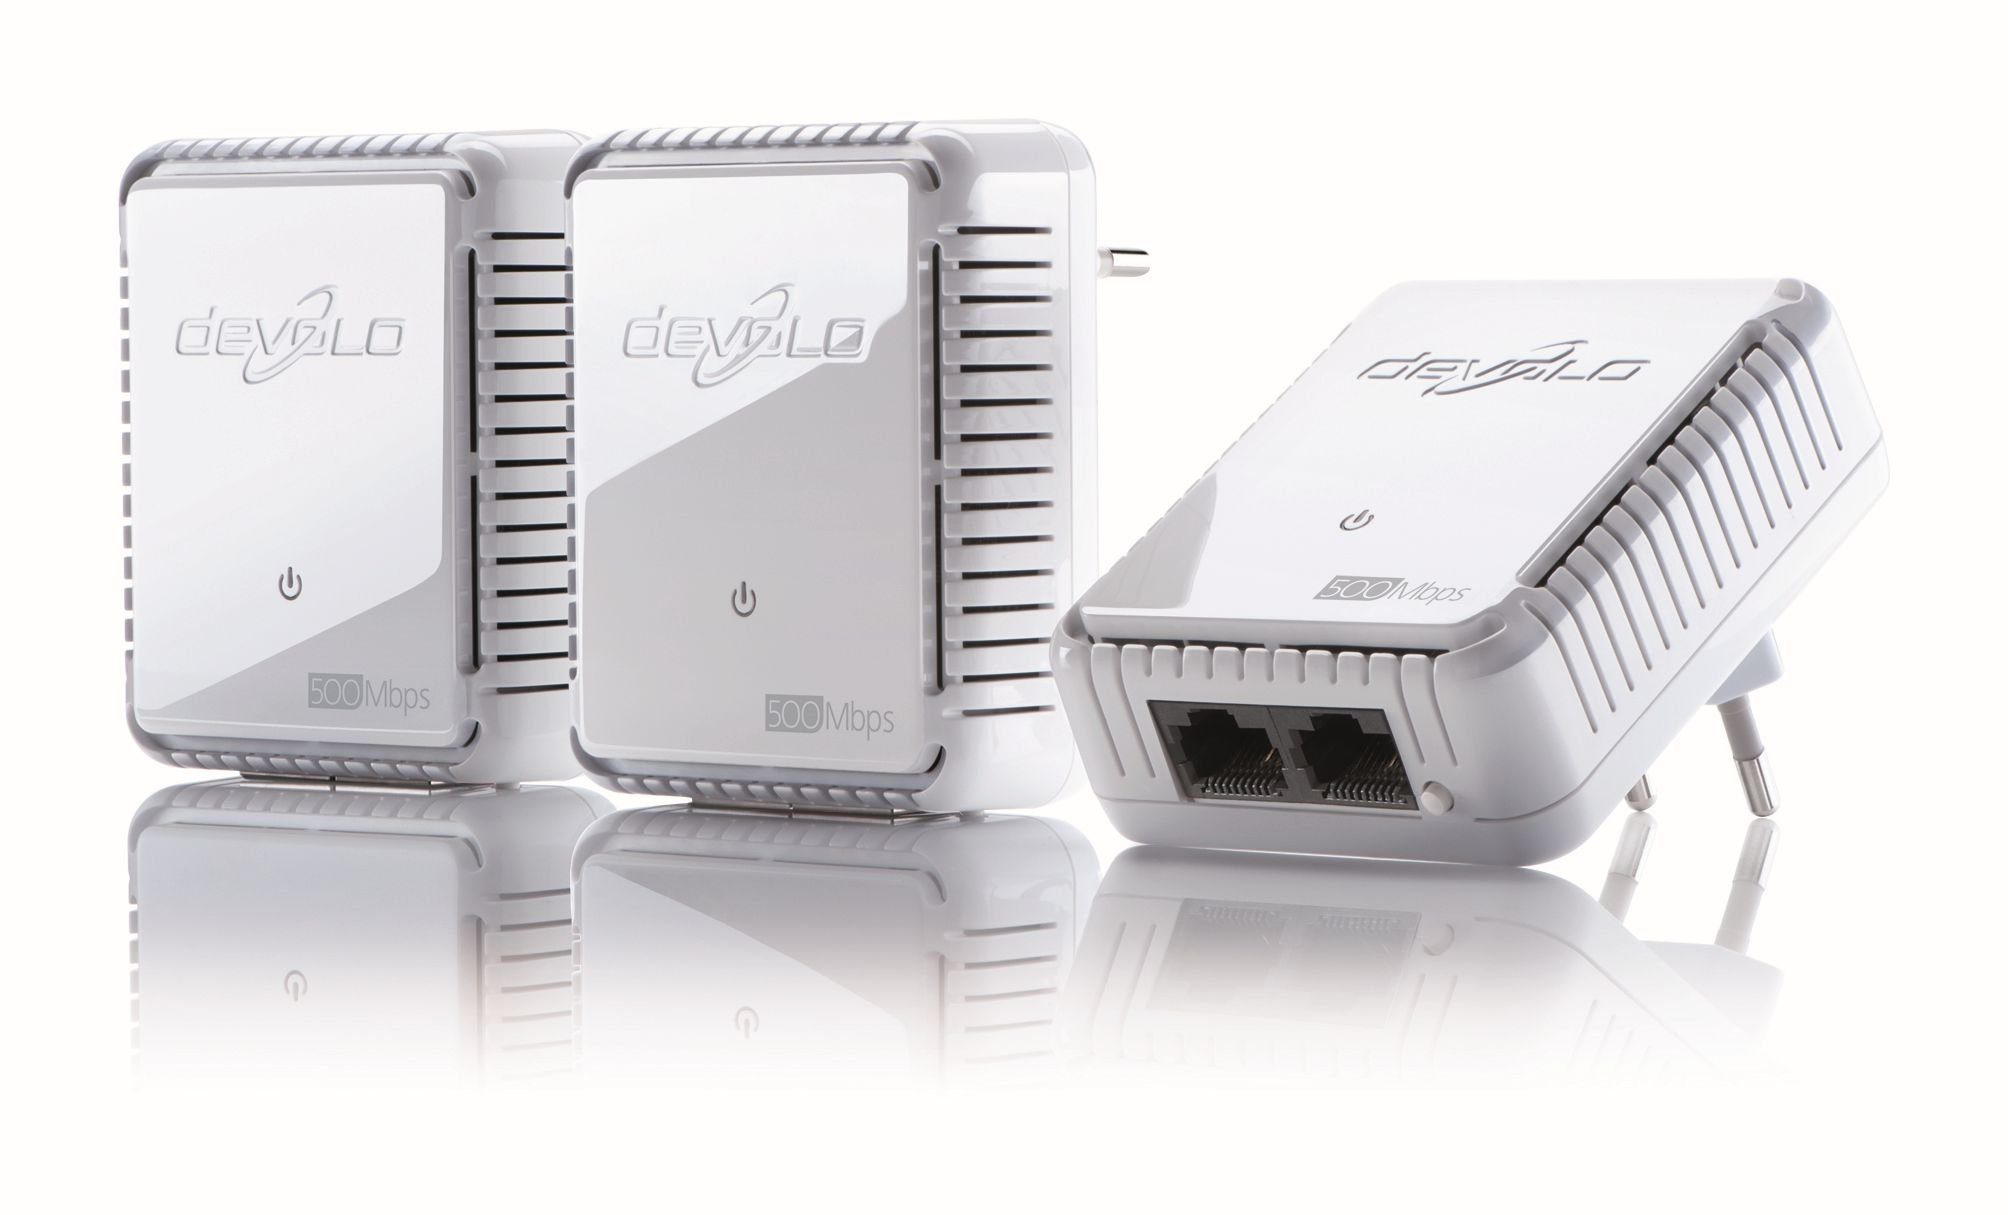 DEVOLO Powerline »dLAN 500 duo Kit (500Mbit, 2xLAN, Netzwerk)«